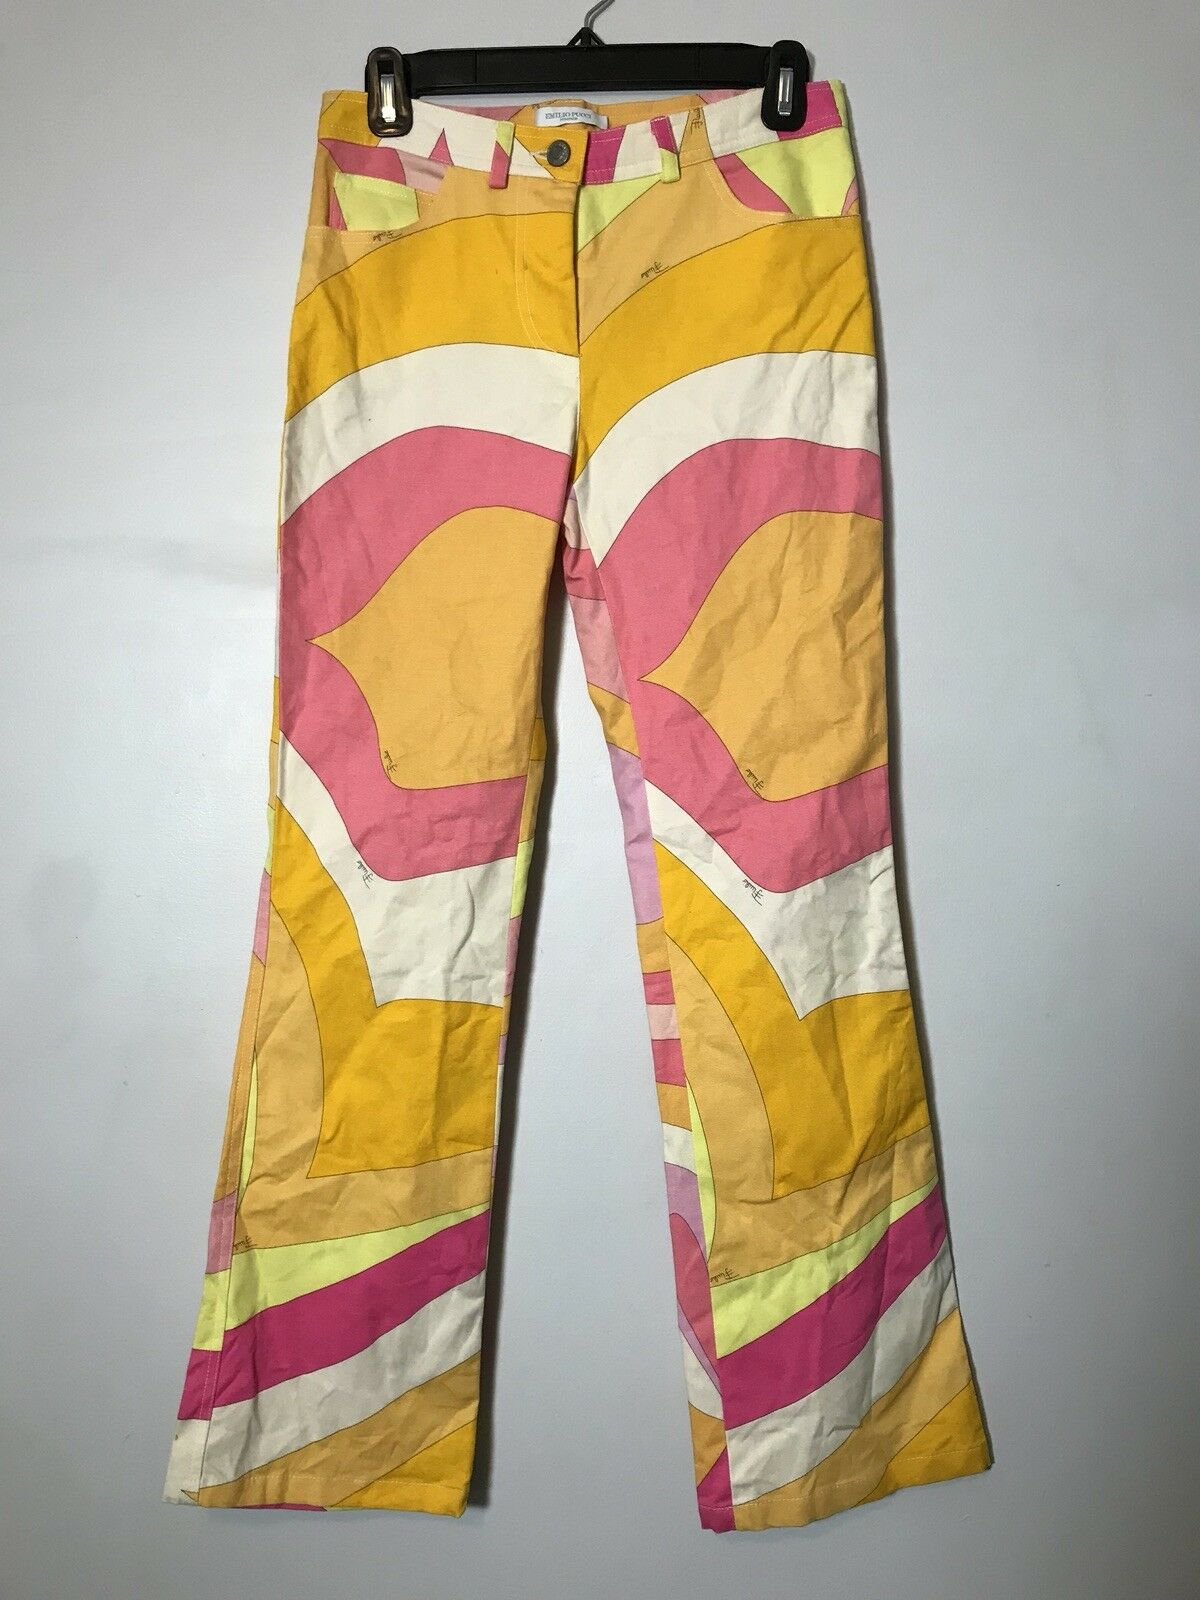 Emilio Pucci Abstract Sorbet Sunset Pink orange Medley Jeans Size 36